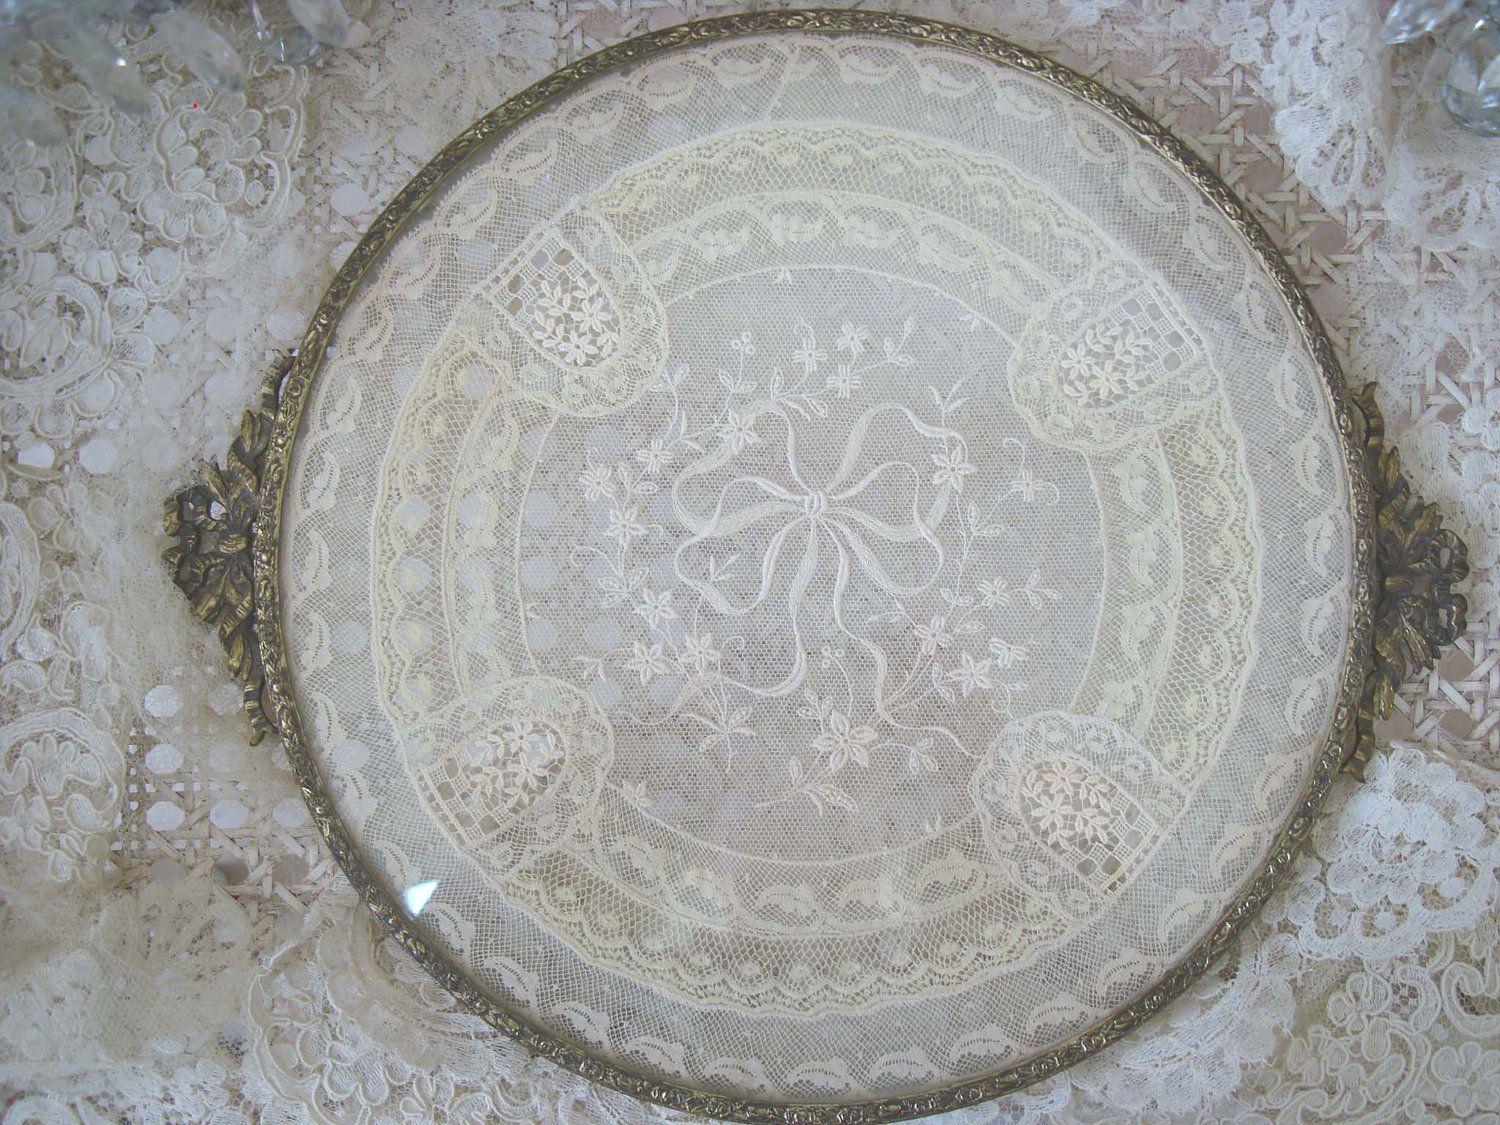 Antique vanity tray with lace insert - Exquisite Vintage Vanity Tray With Lace Doily